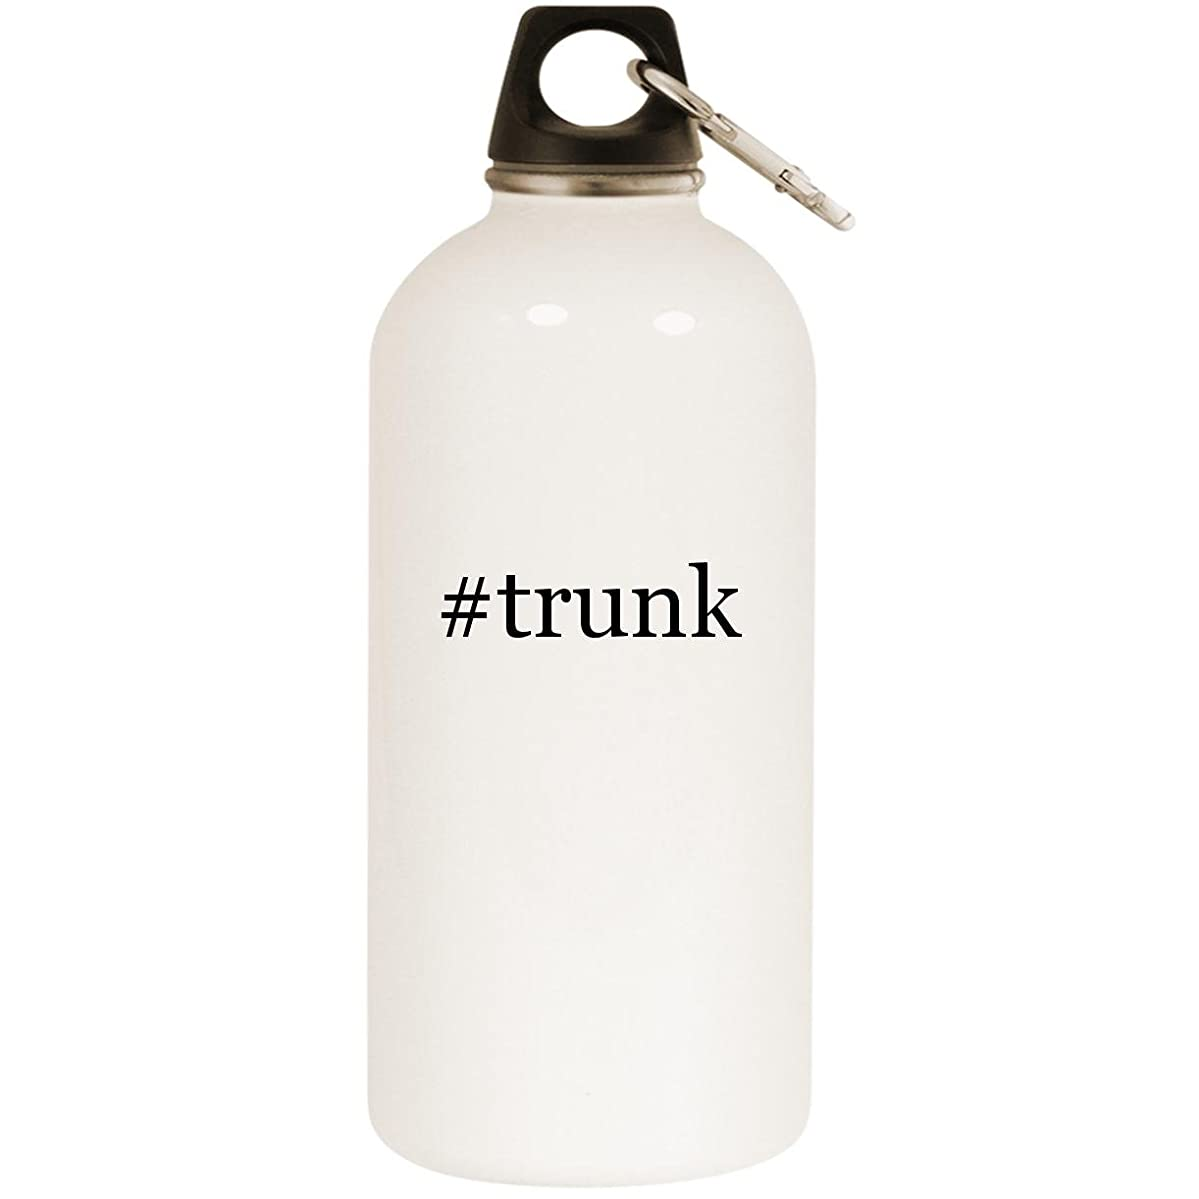 Molandra Products #Trunk - White Hashtag 20oz Stainless Steel Water Bottle with Carabiner